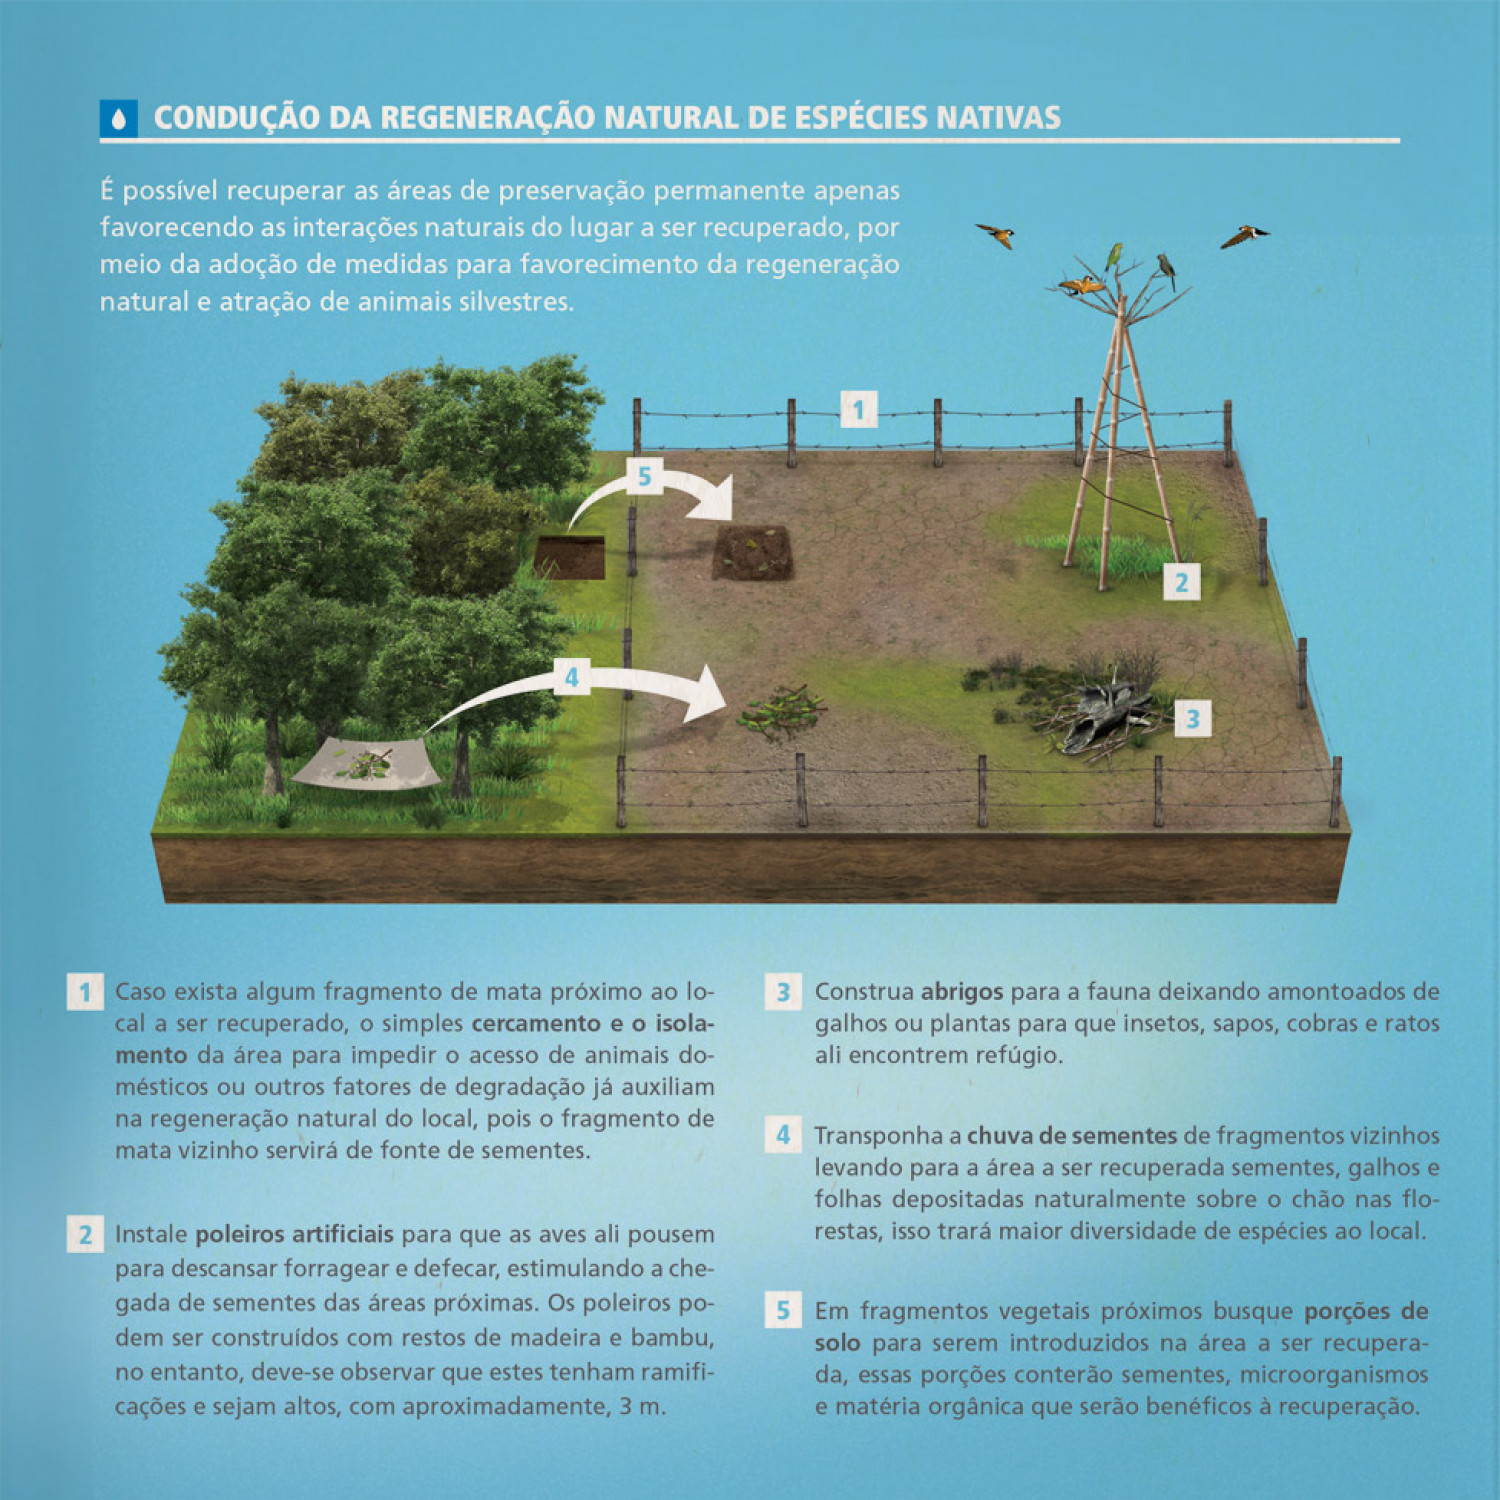 Managed natural regeneration of native species Infographic